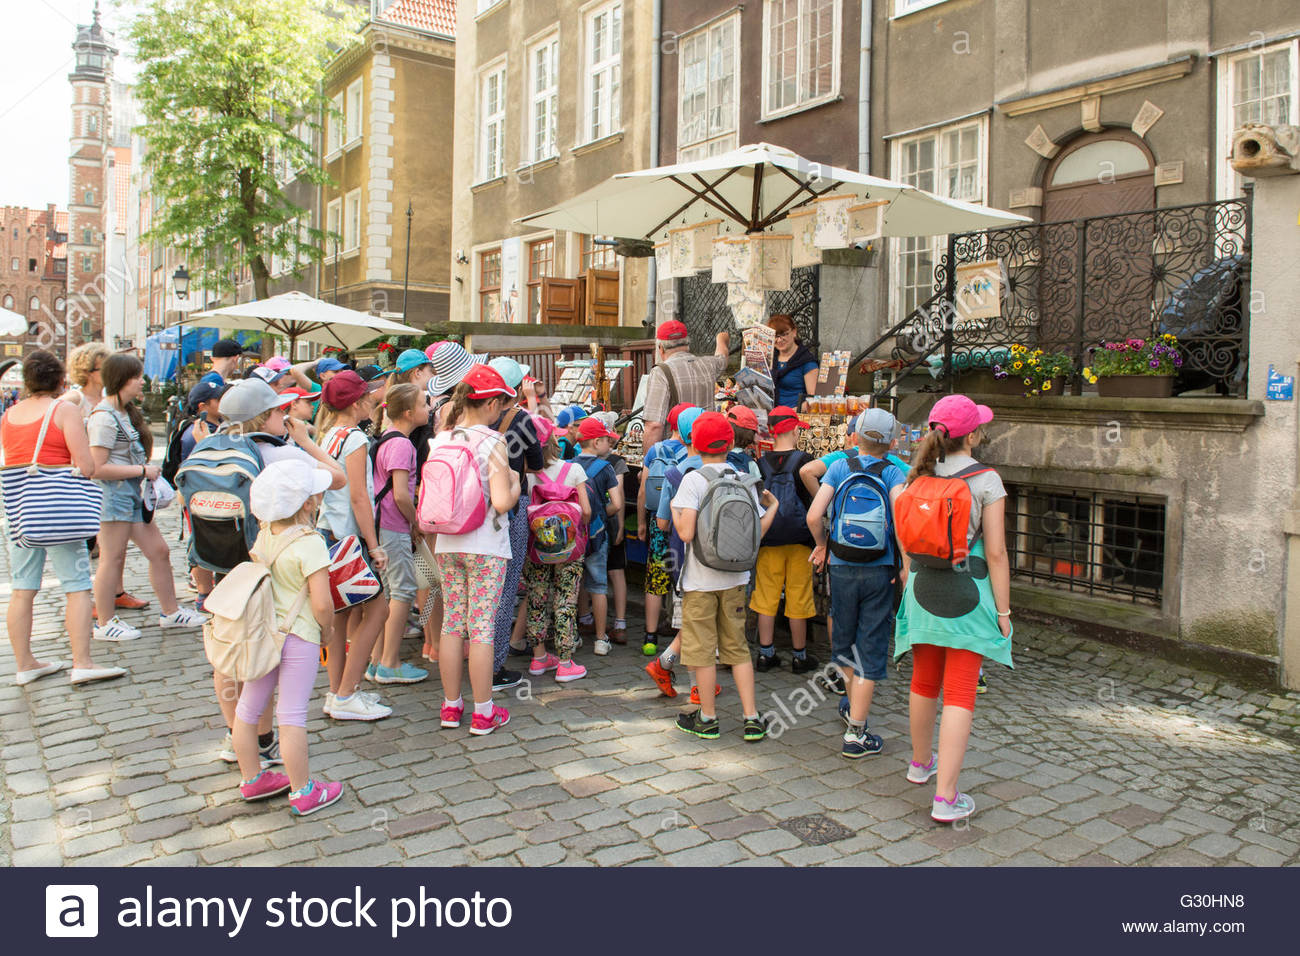 Mariacka Street, Gdansk, Poland - school group listening to teacher or guide explaining about items for sale on - Stock Image